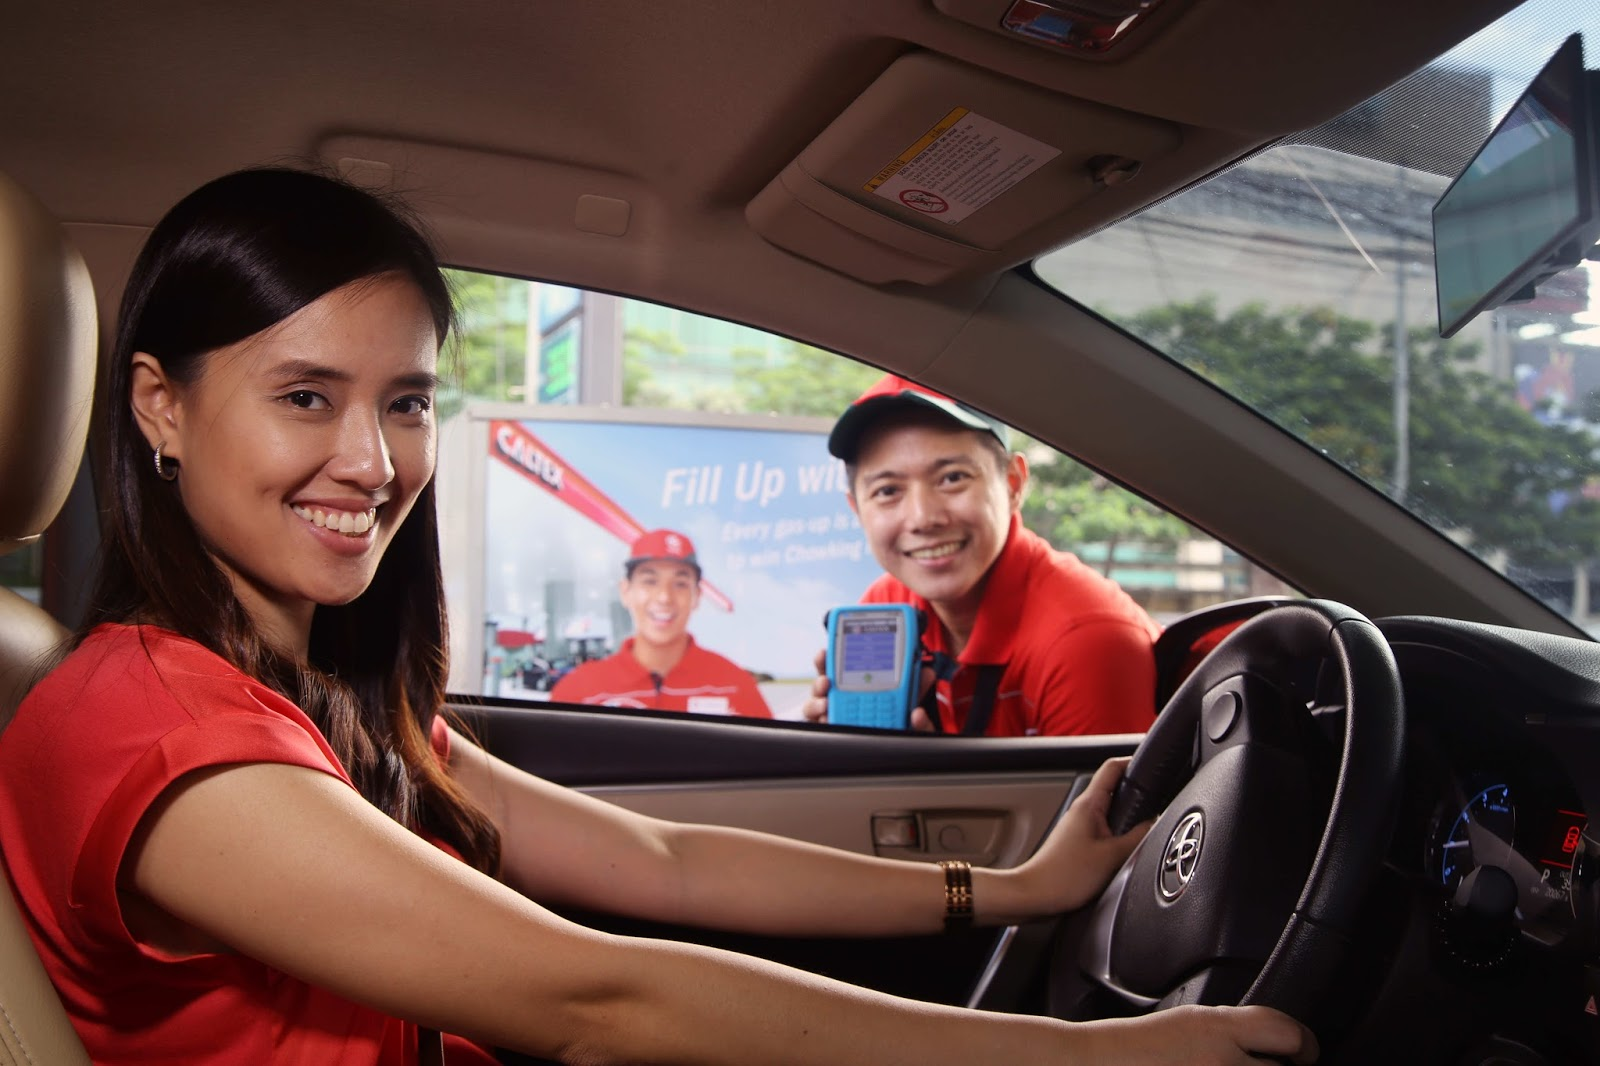 Caltex Fill Up with Chow Promo